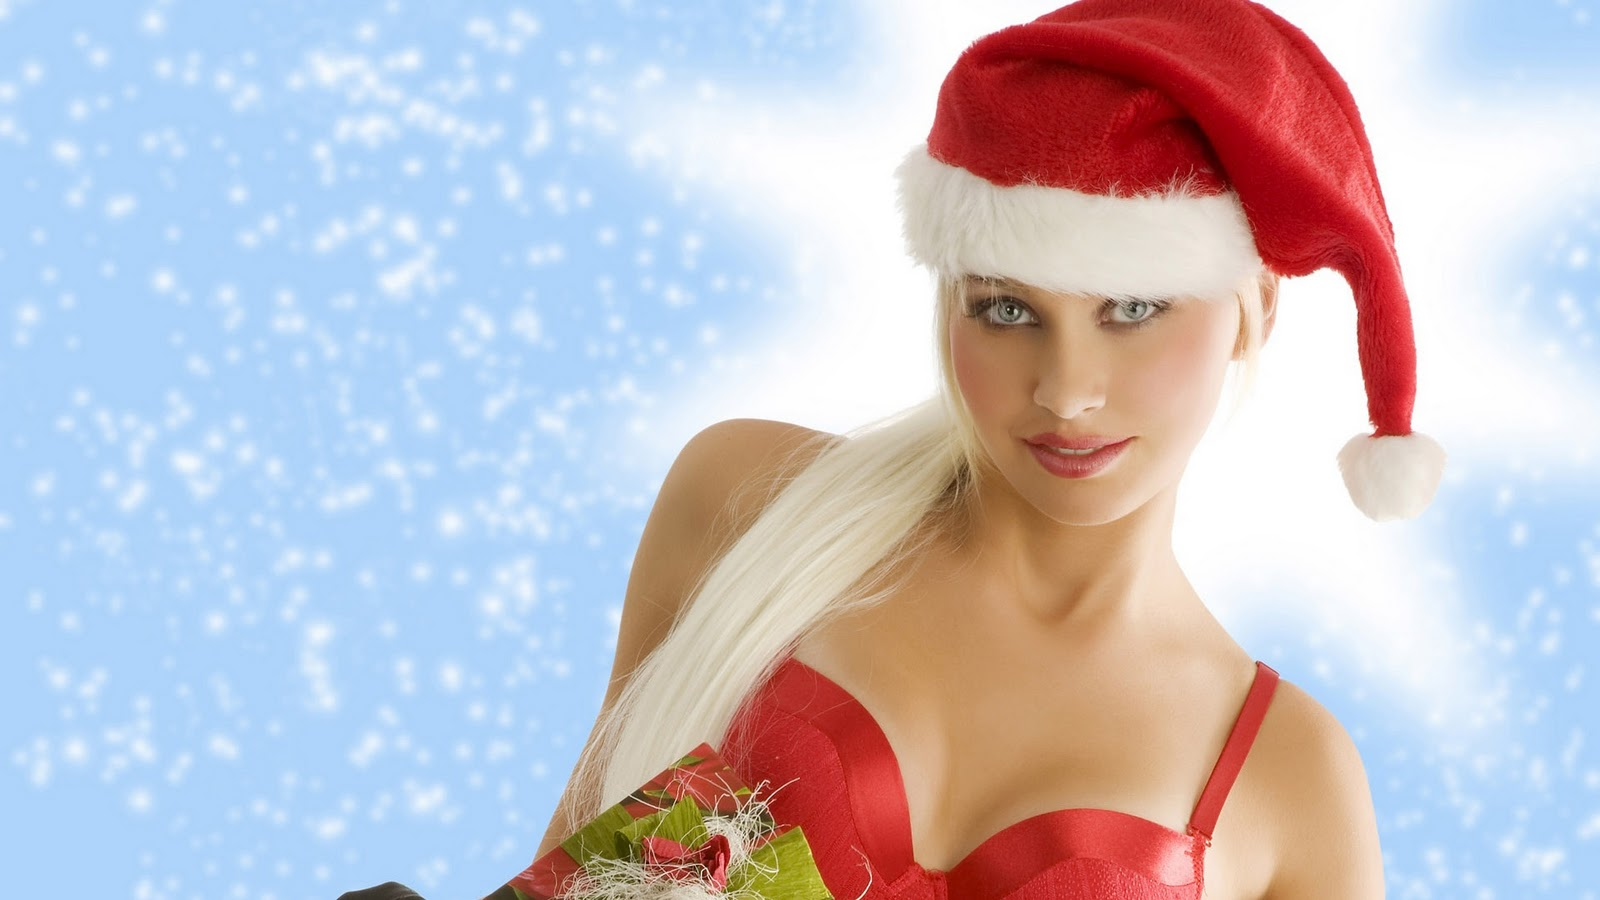 Wallpaper computer Sexy christmas